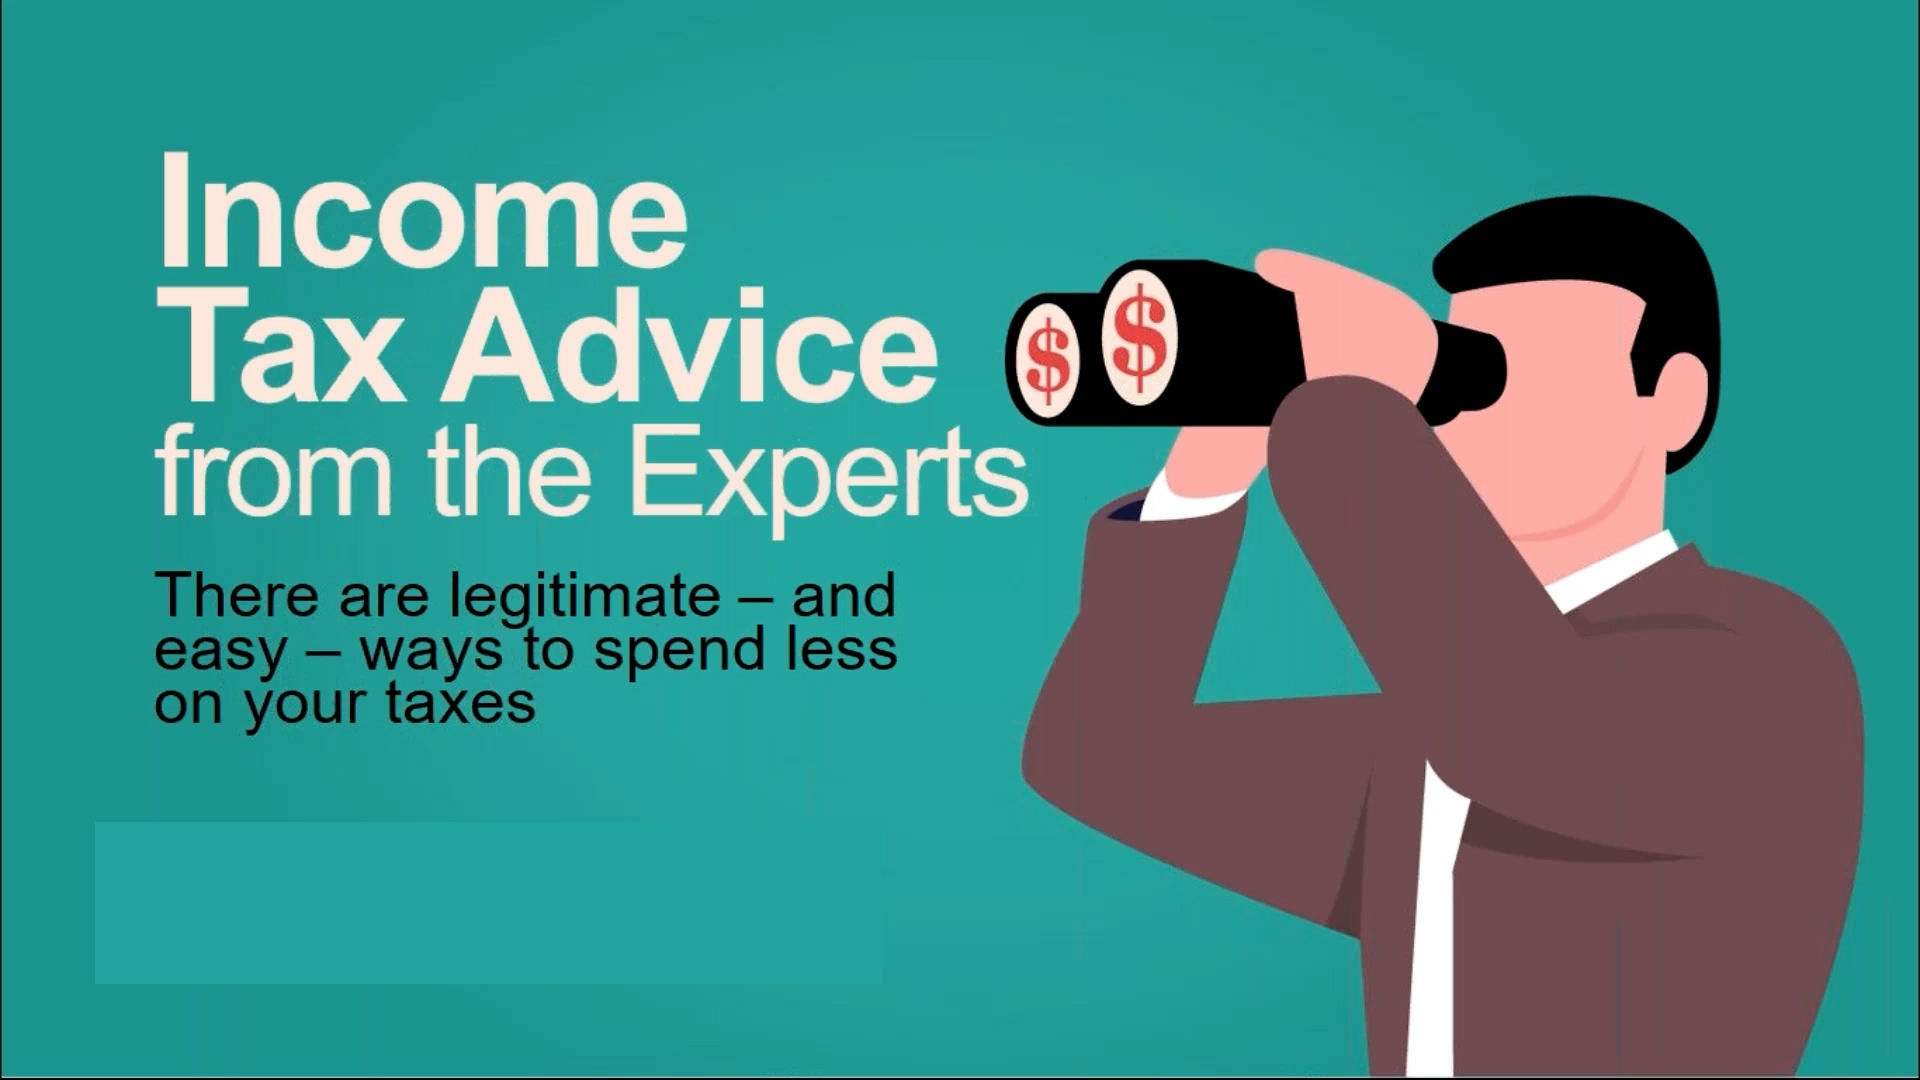 Income Tax Advice from the Experts